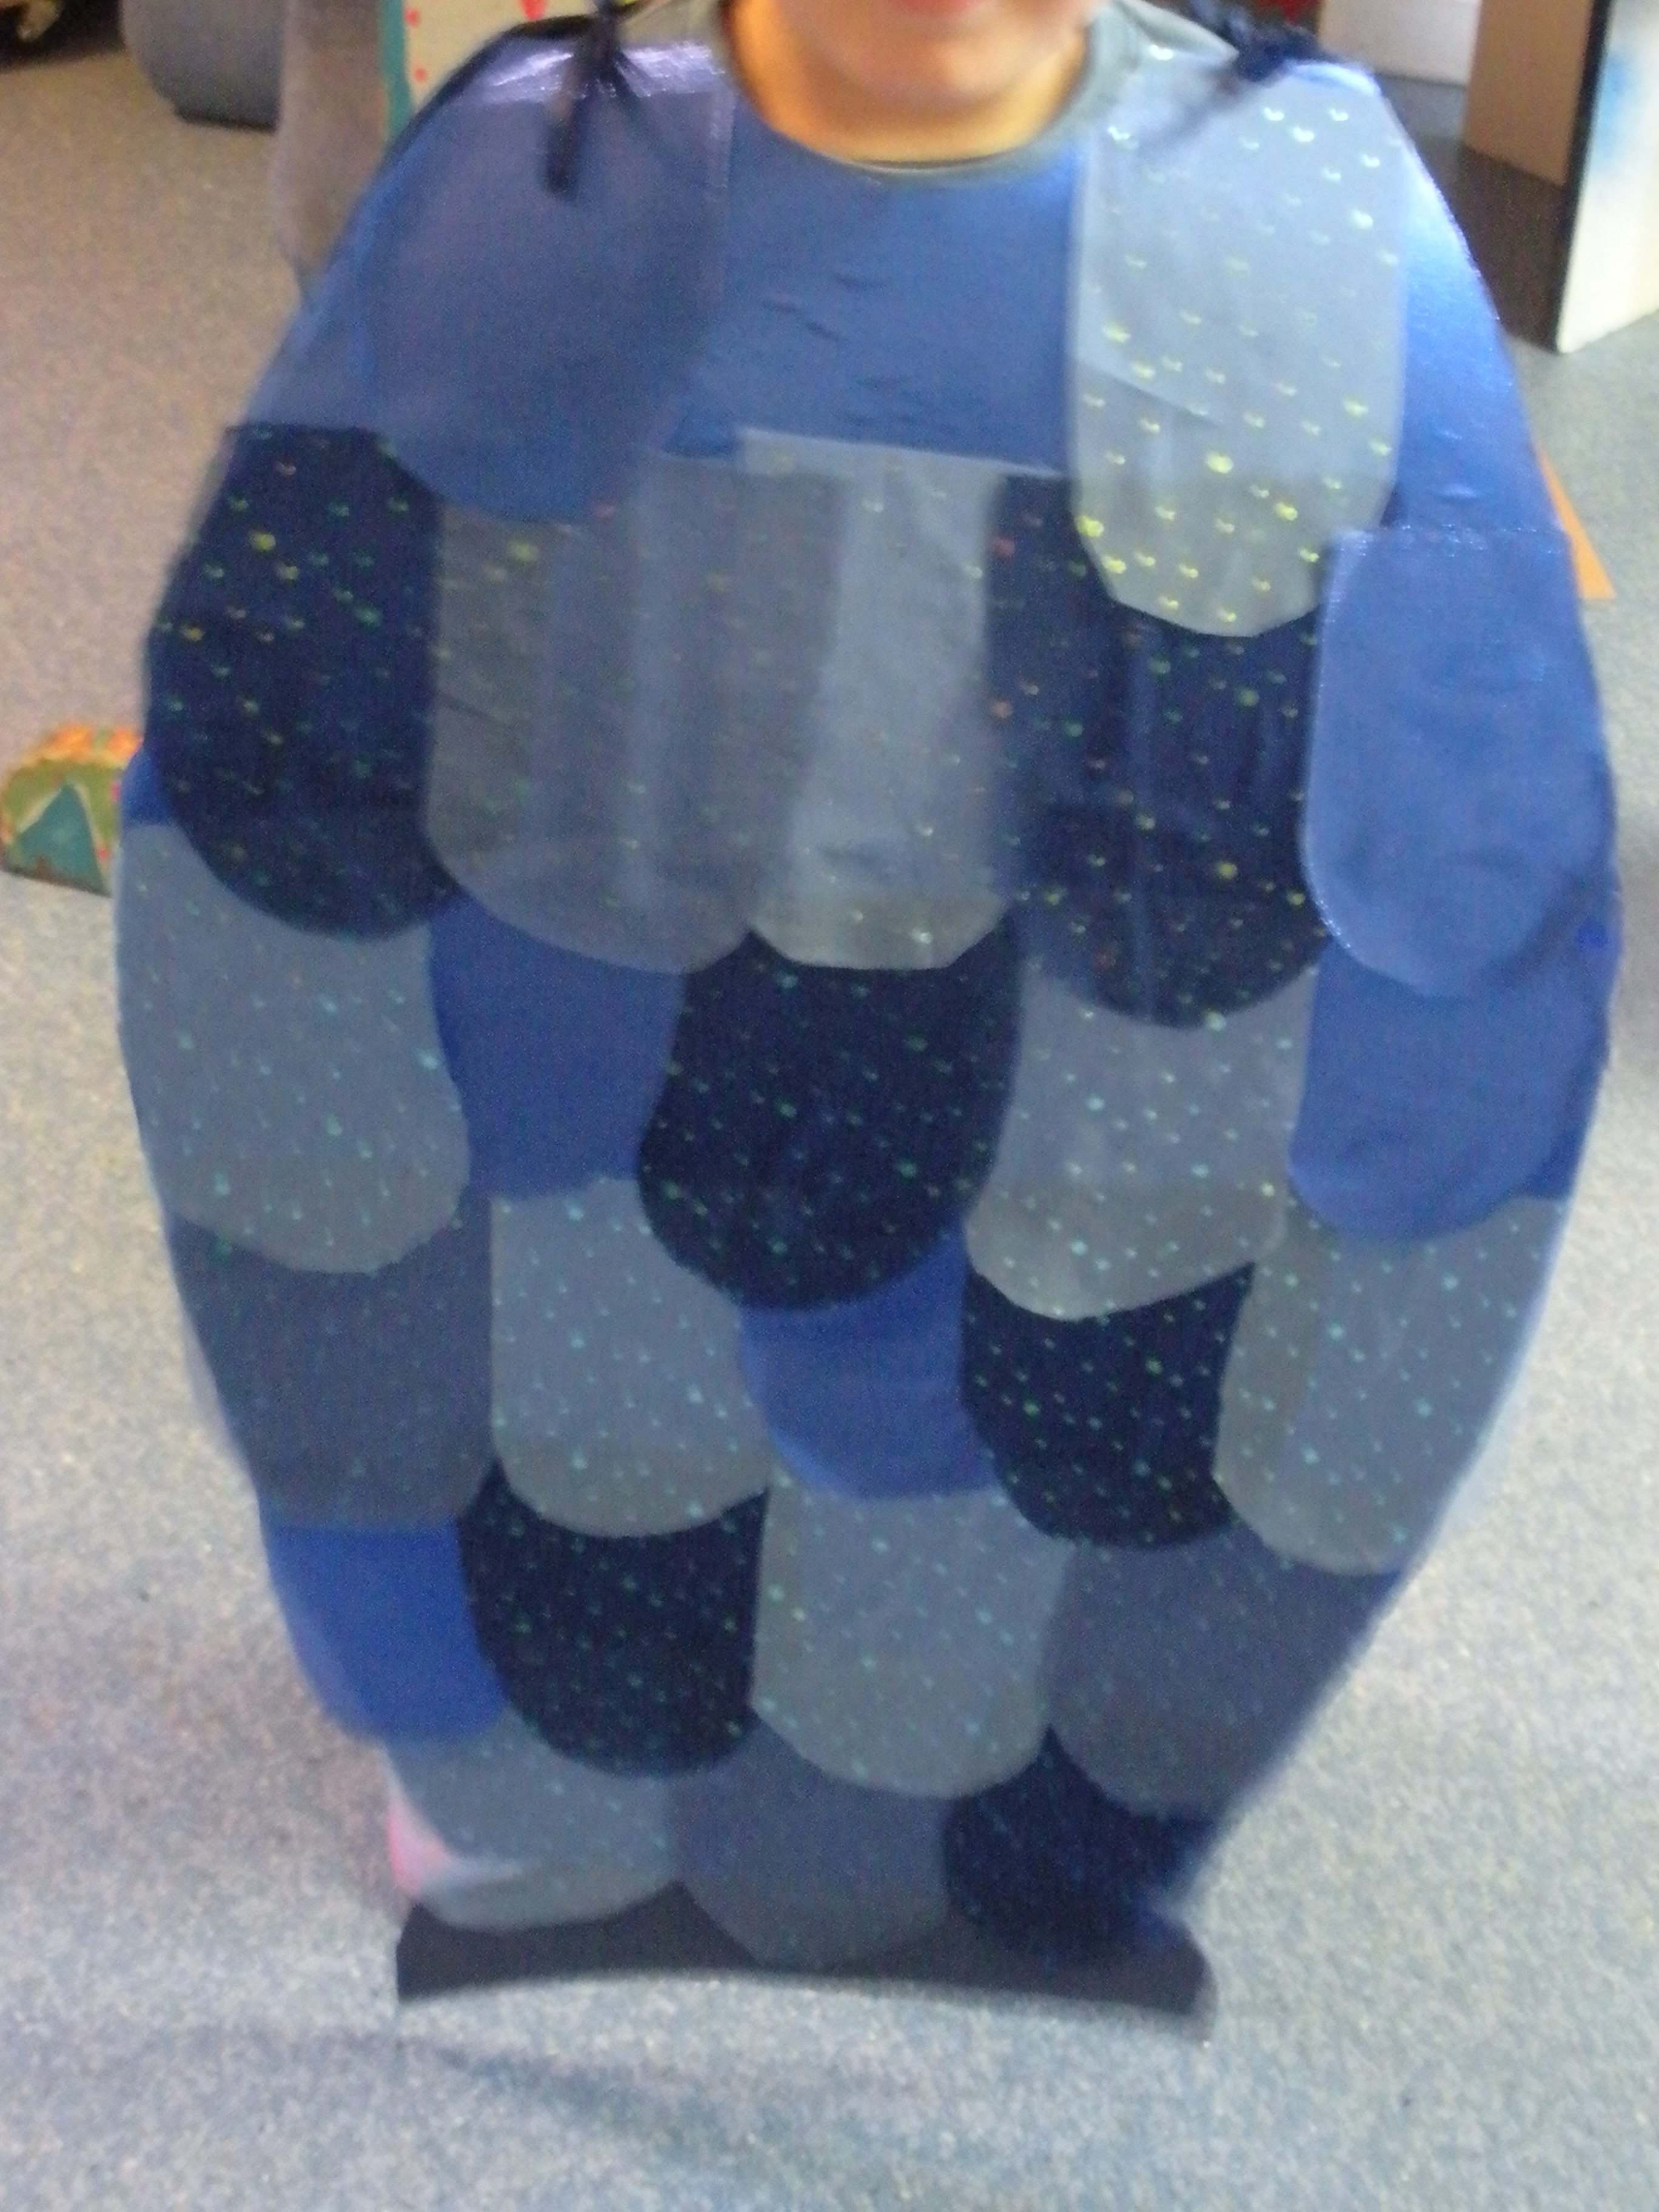 One fish two fish blue fish blue fish blue fish beth for One fish two fish costume